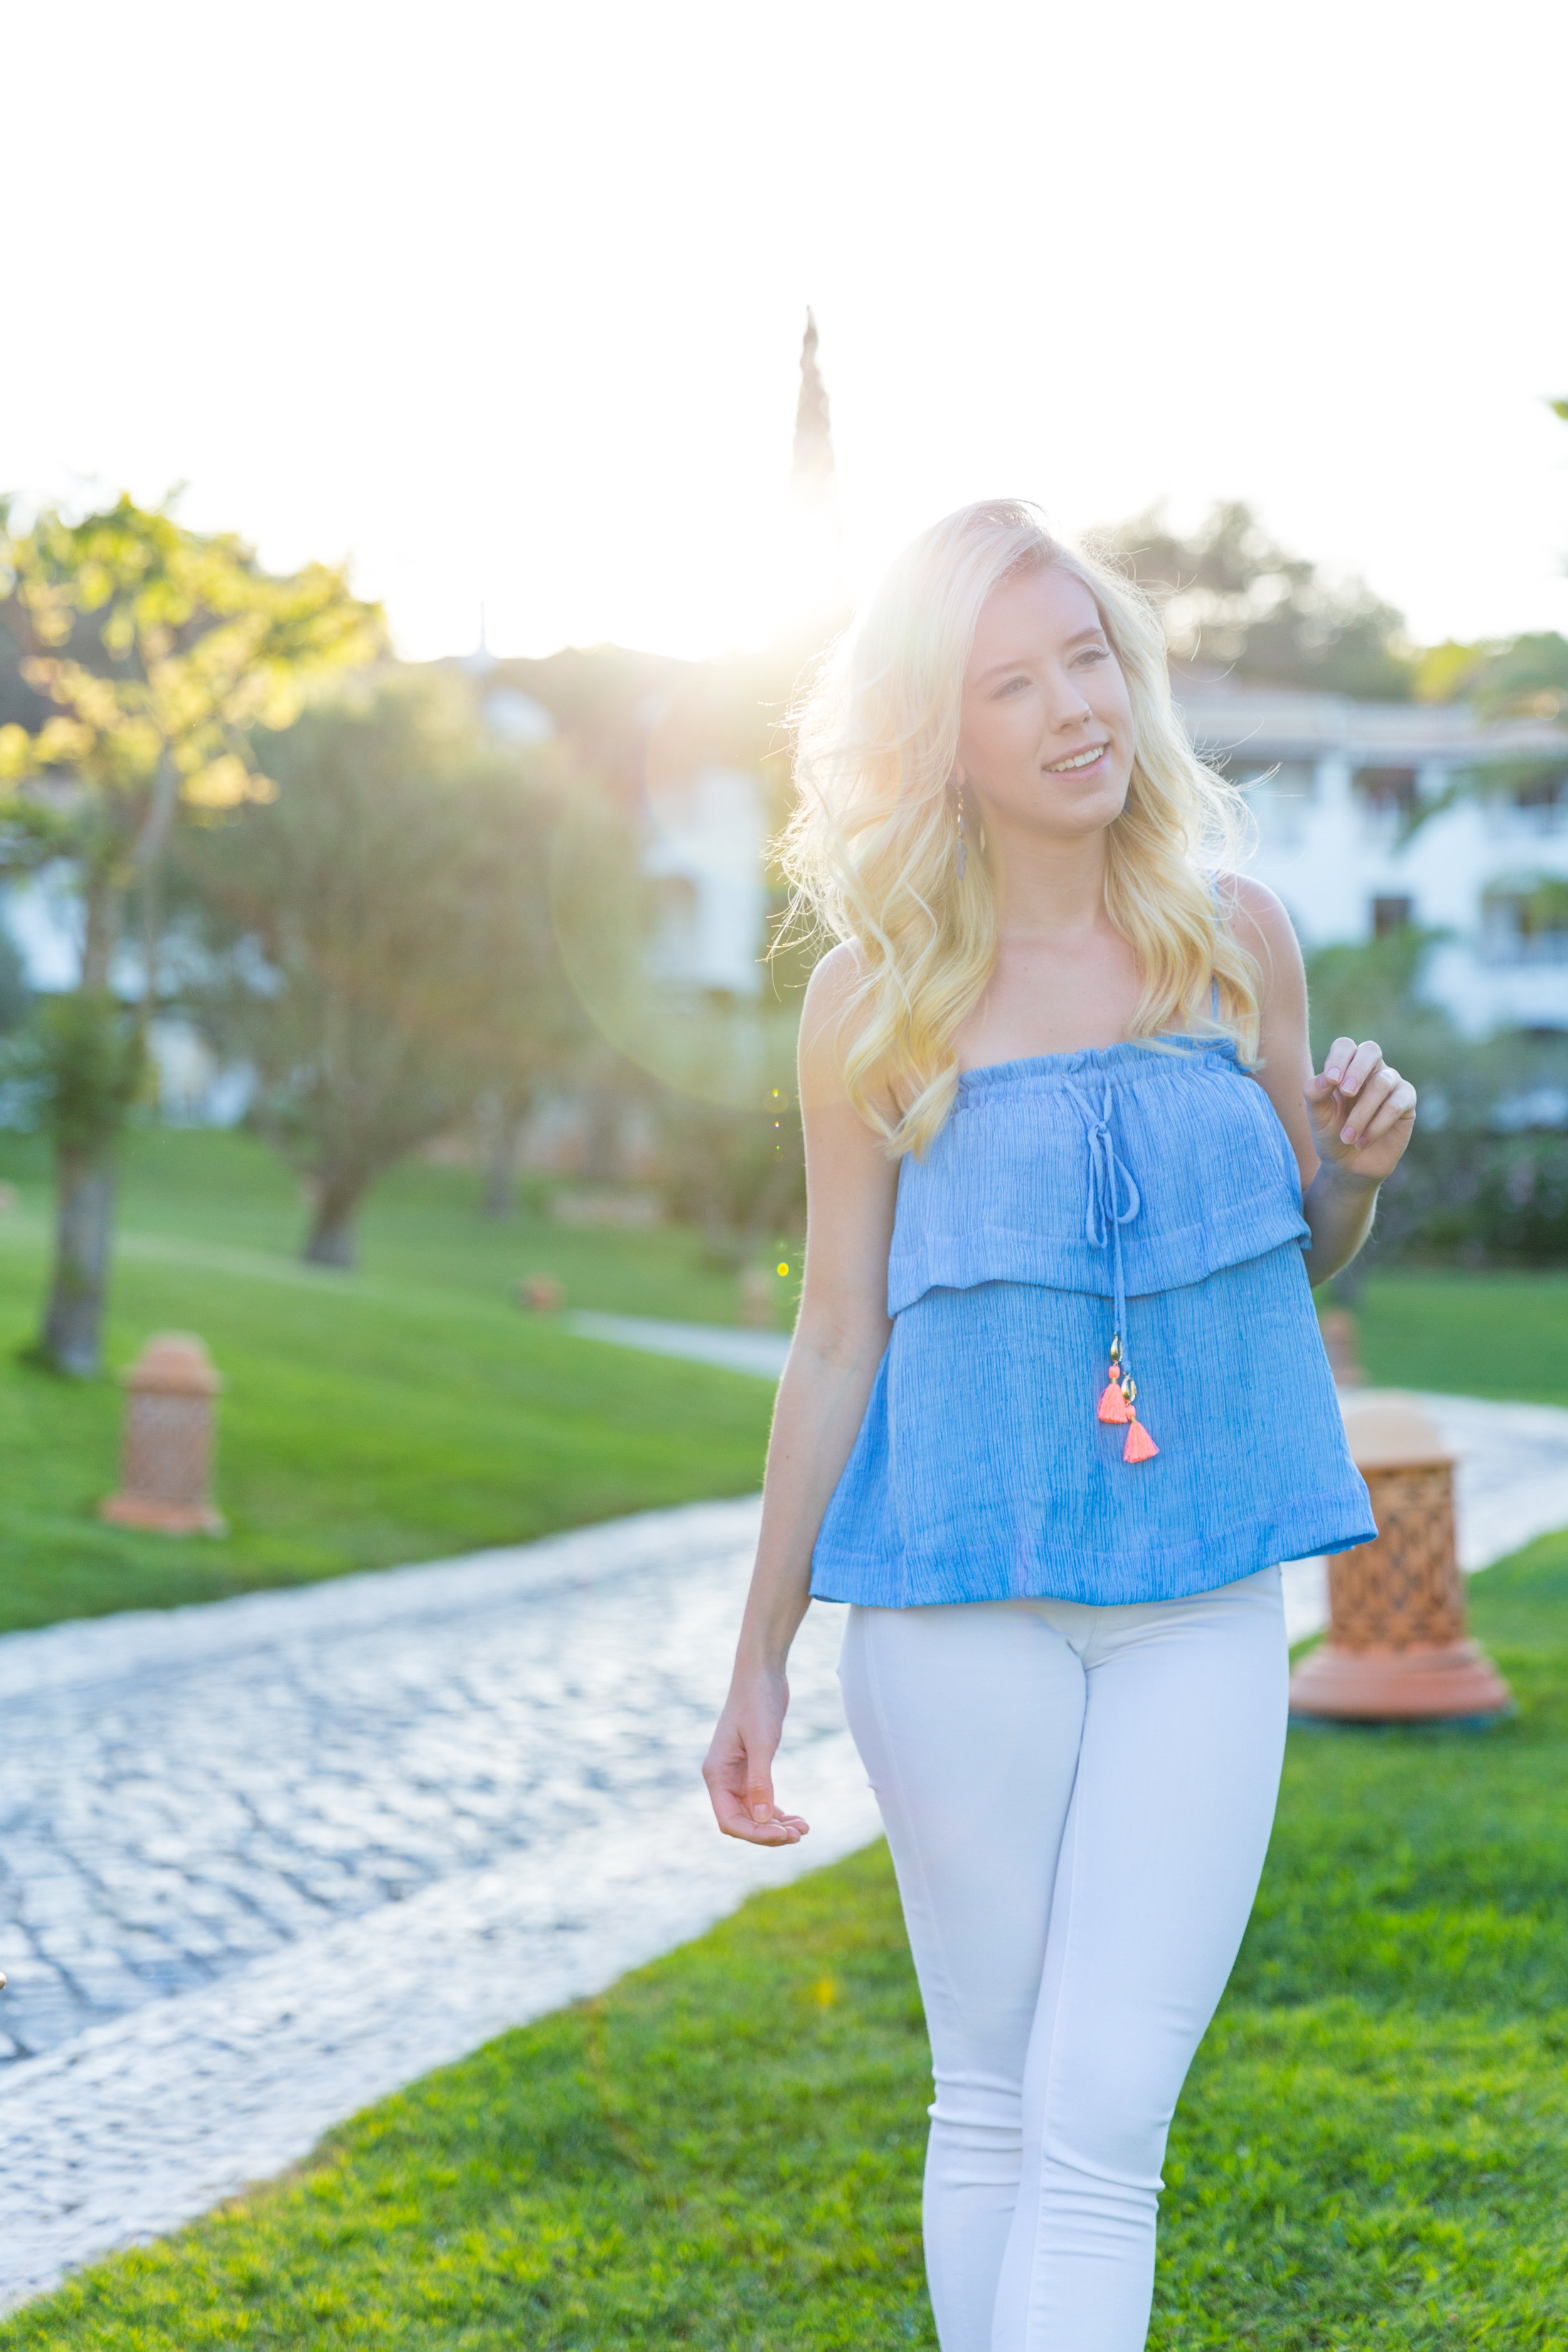 Portugal Algarve Summer Fashion Lilly Pulitzer Top White Jeans-5.jpg